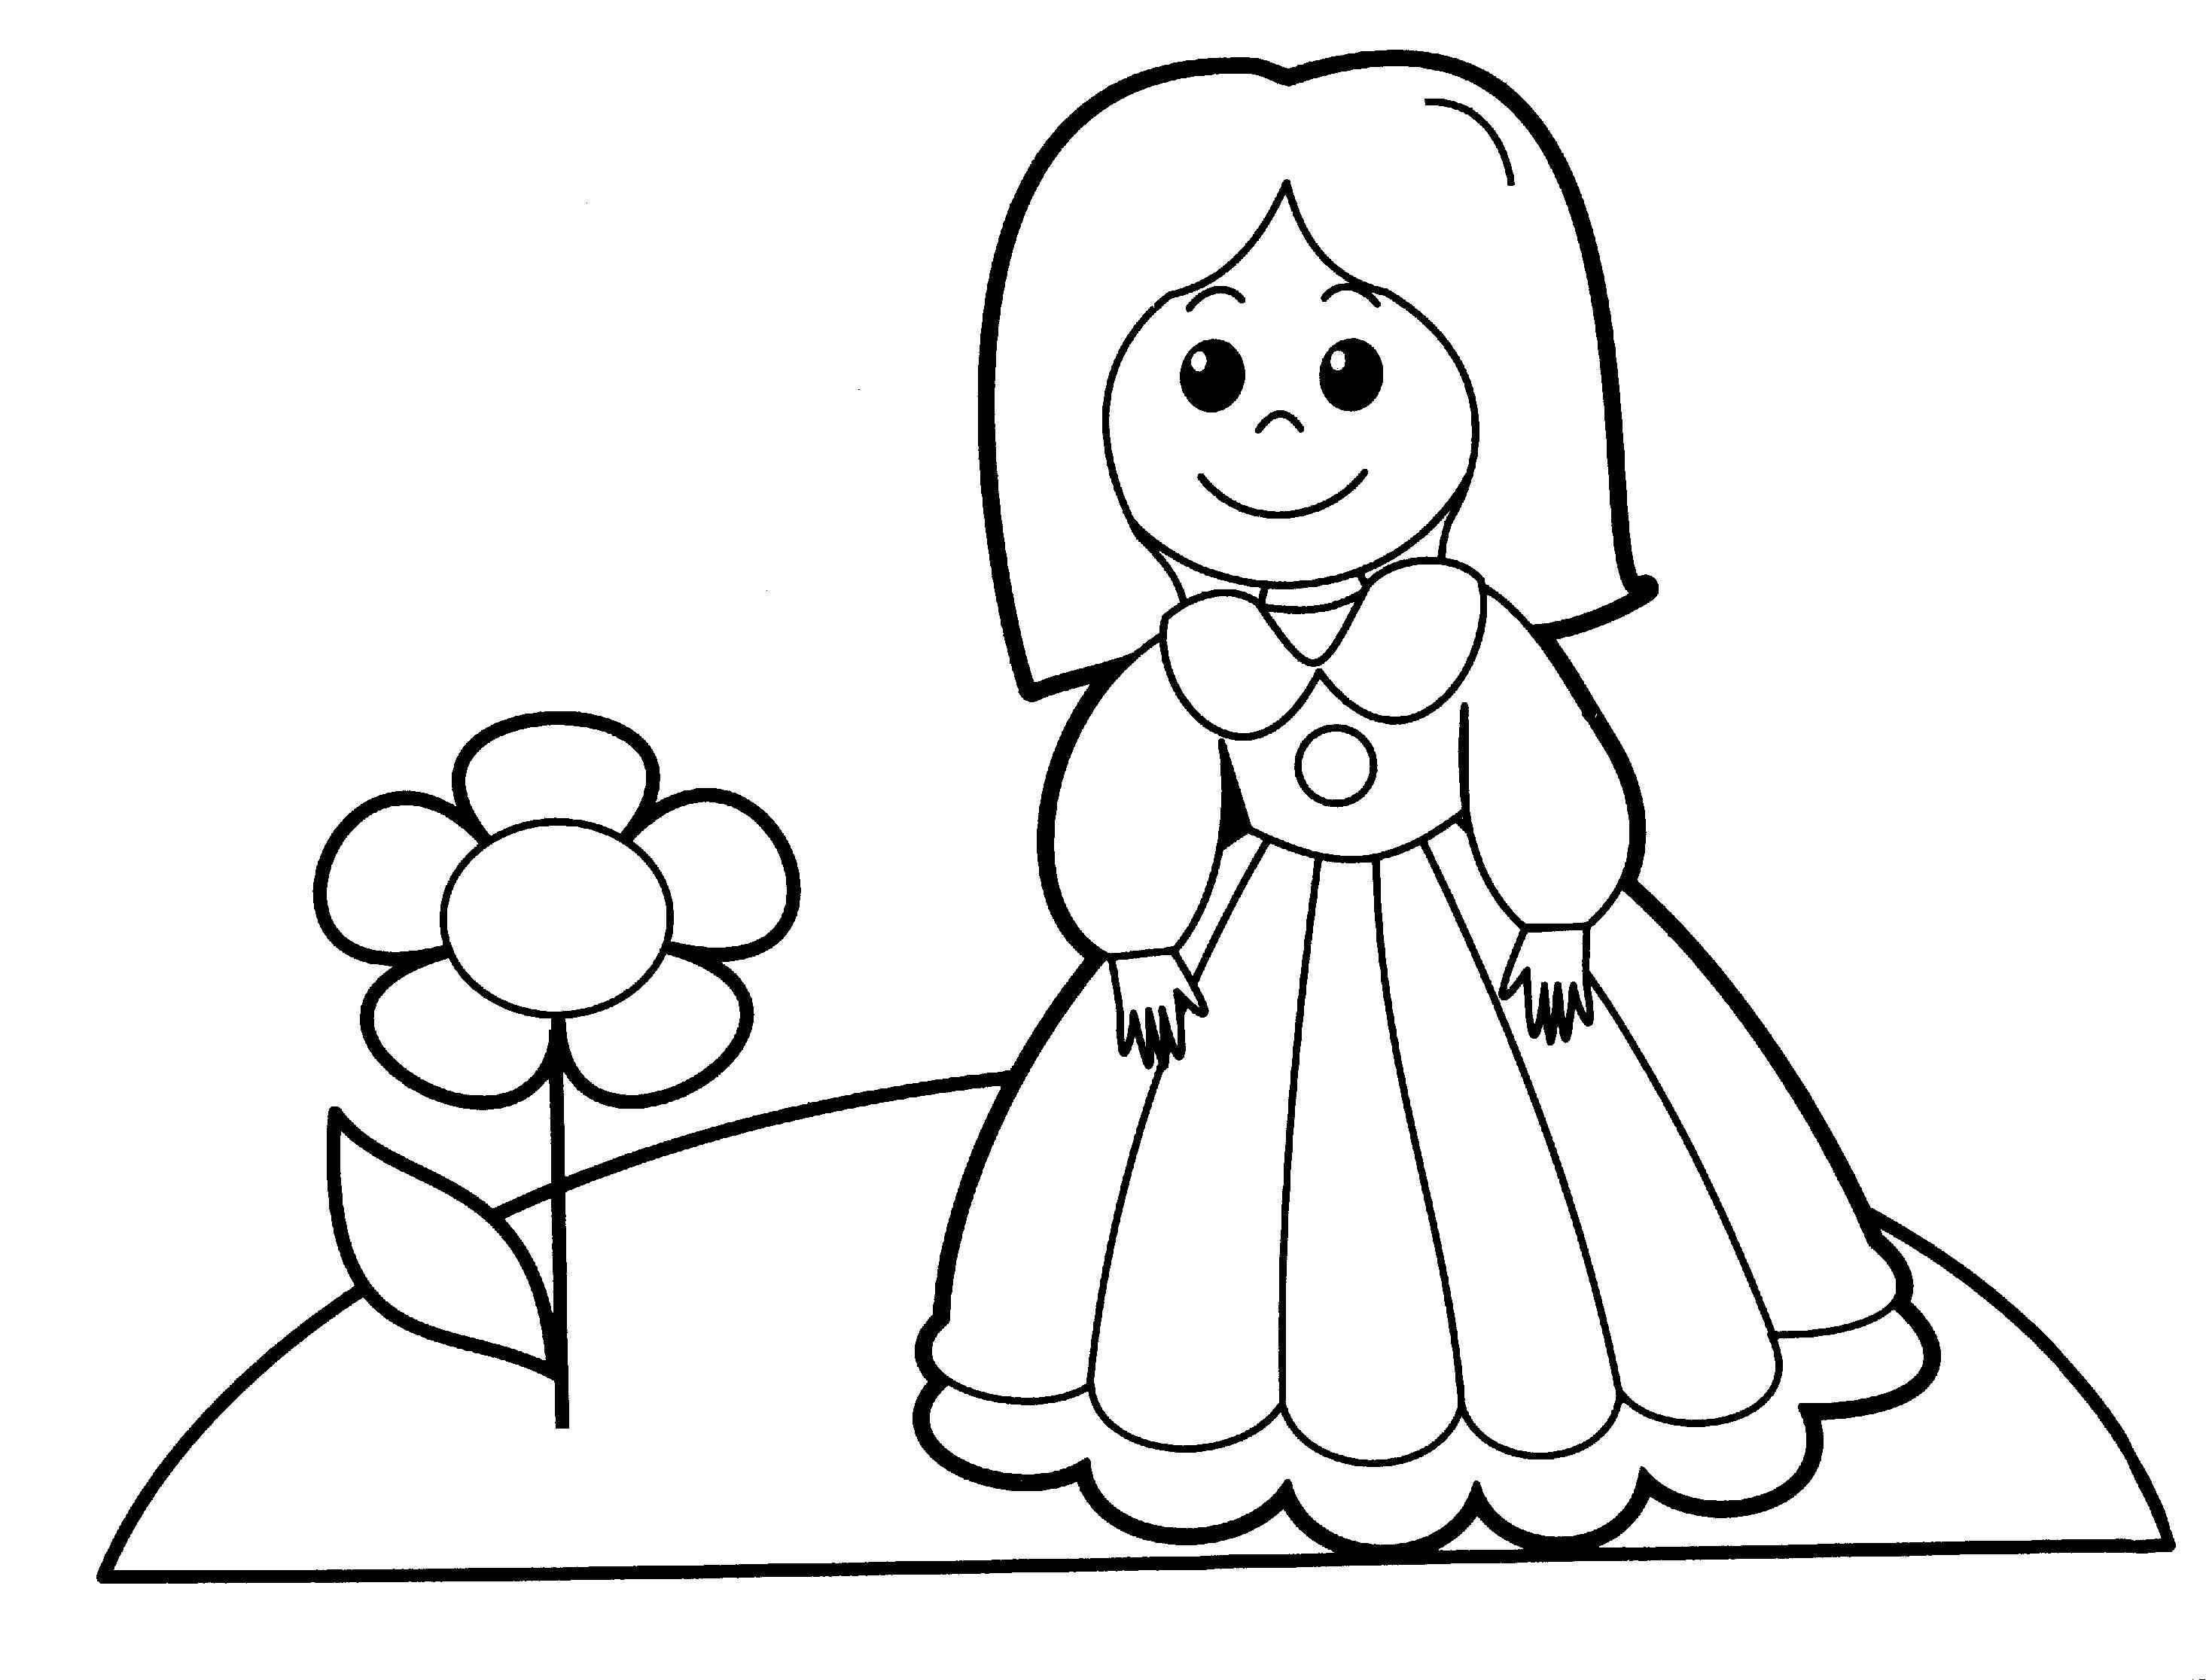 baby doll coloring page baby alive coloring pages at getcoloringscom free baby coloring page doll